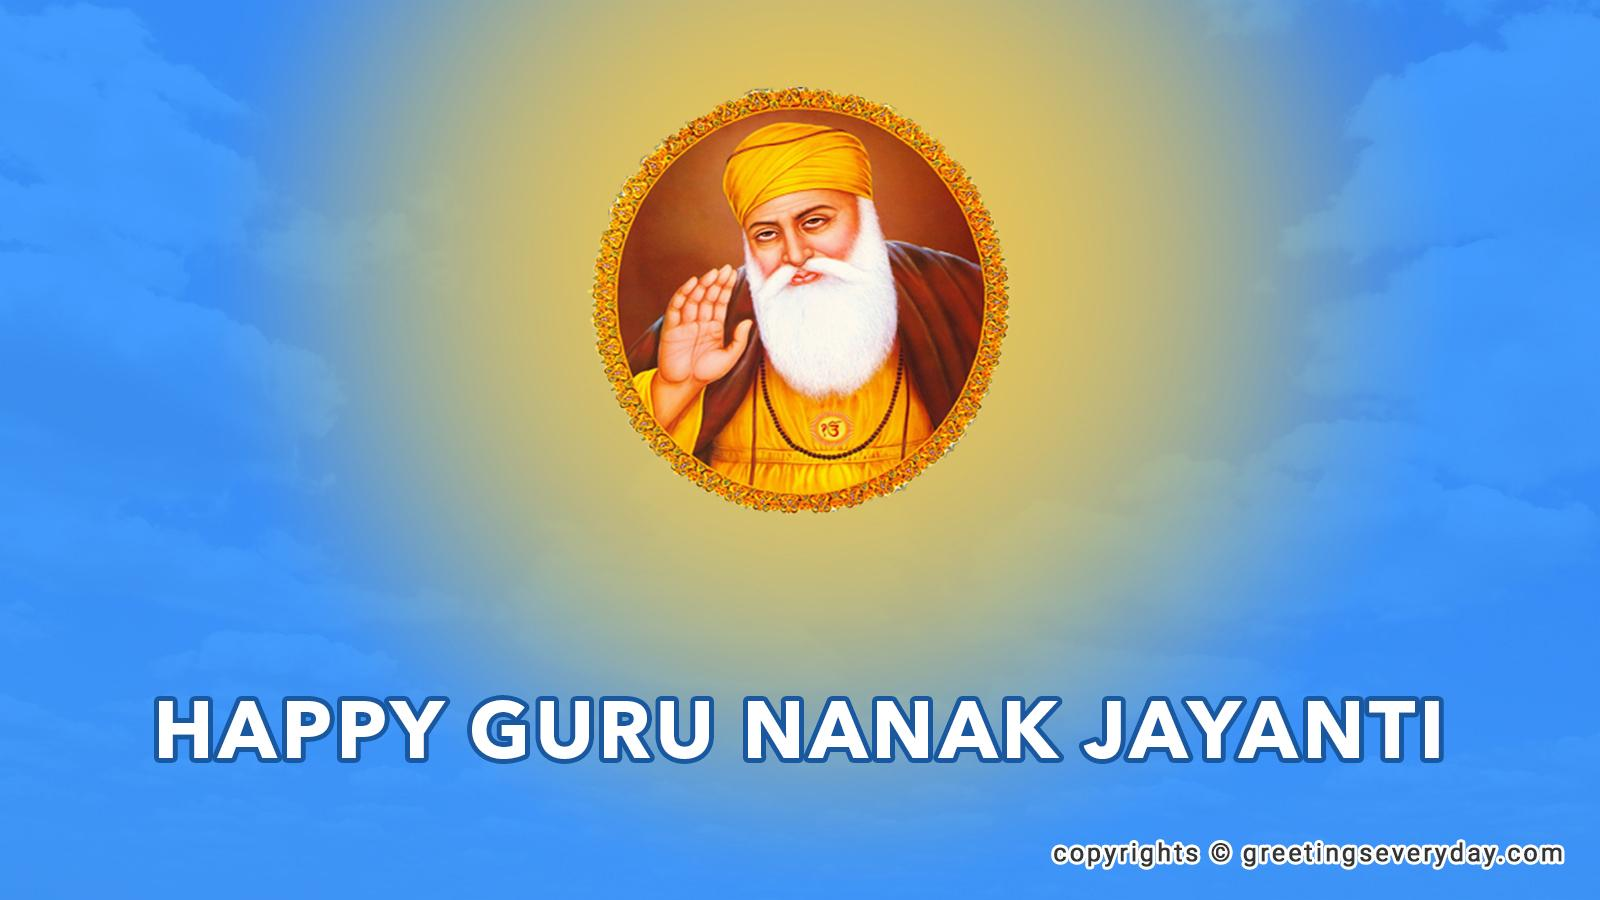 75+ Guru Nanak Gurpurab Wish Pictures And Images